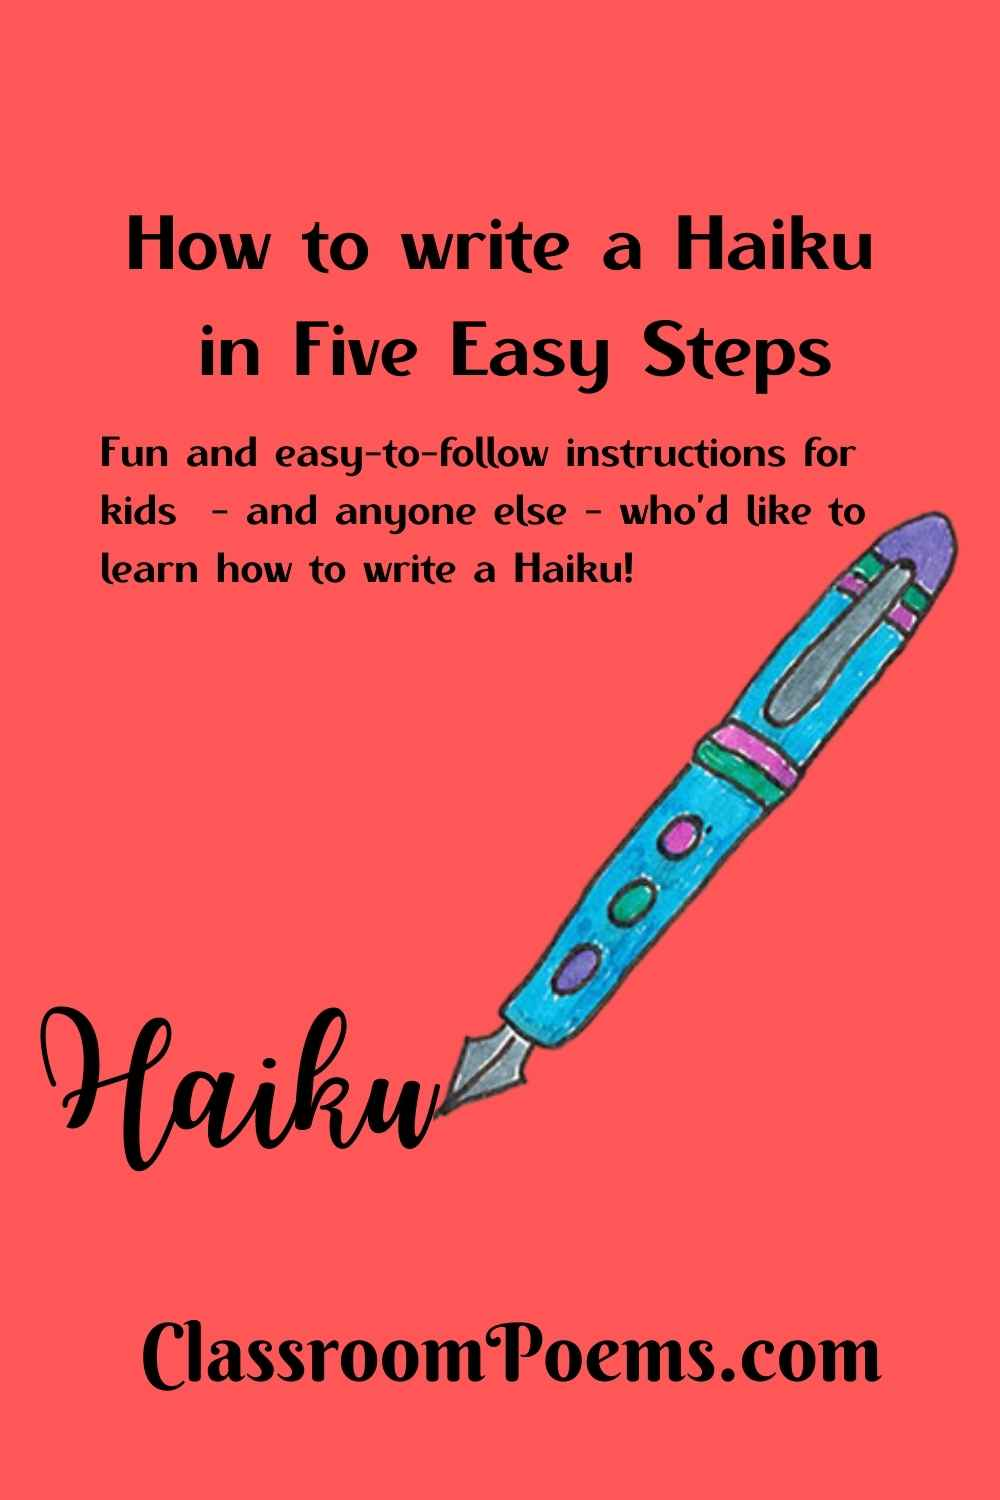 How to write a haiku by Poetry Lady Denise Rodgers on ClassroomPoems.com.